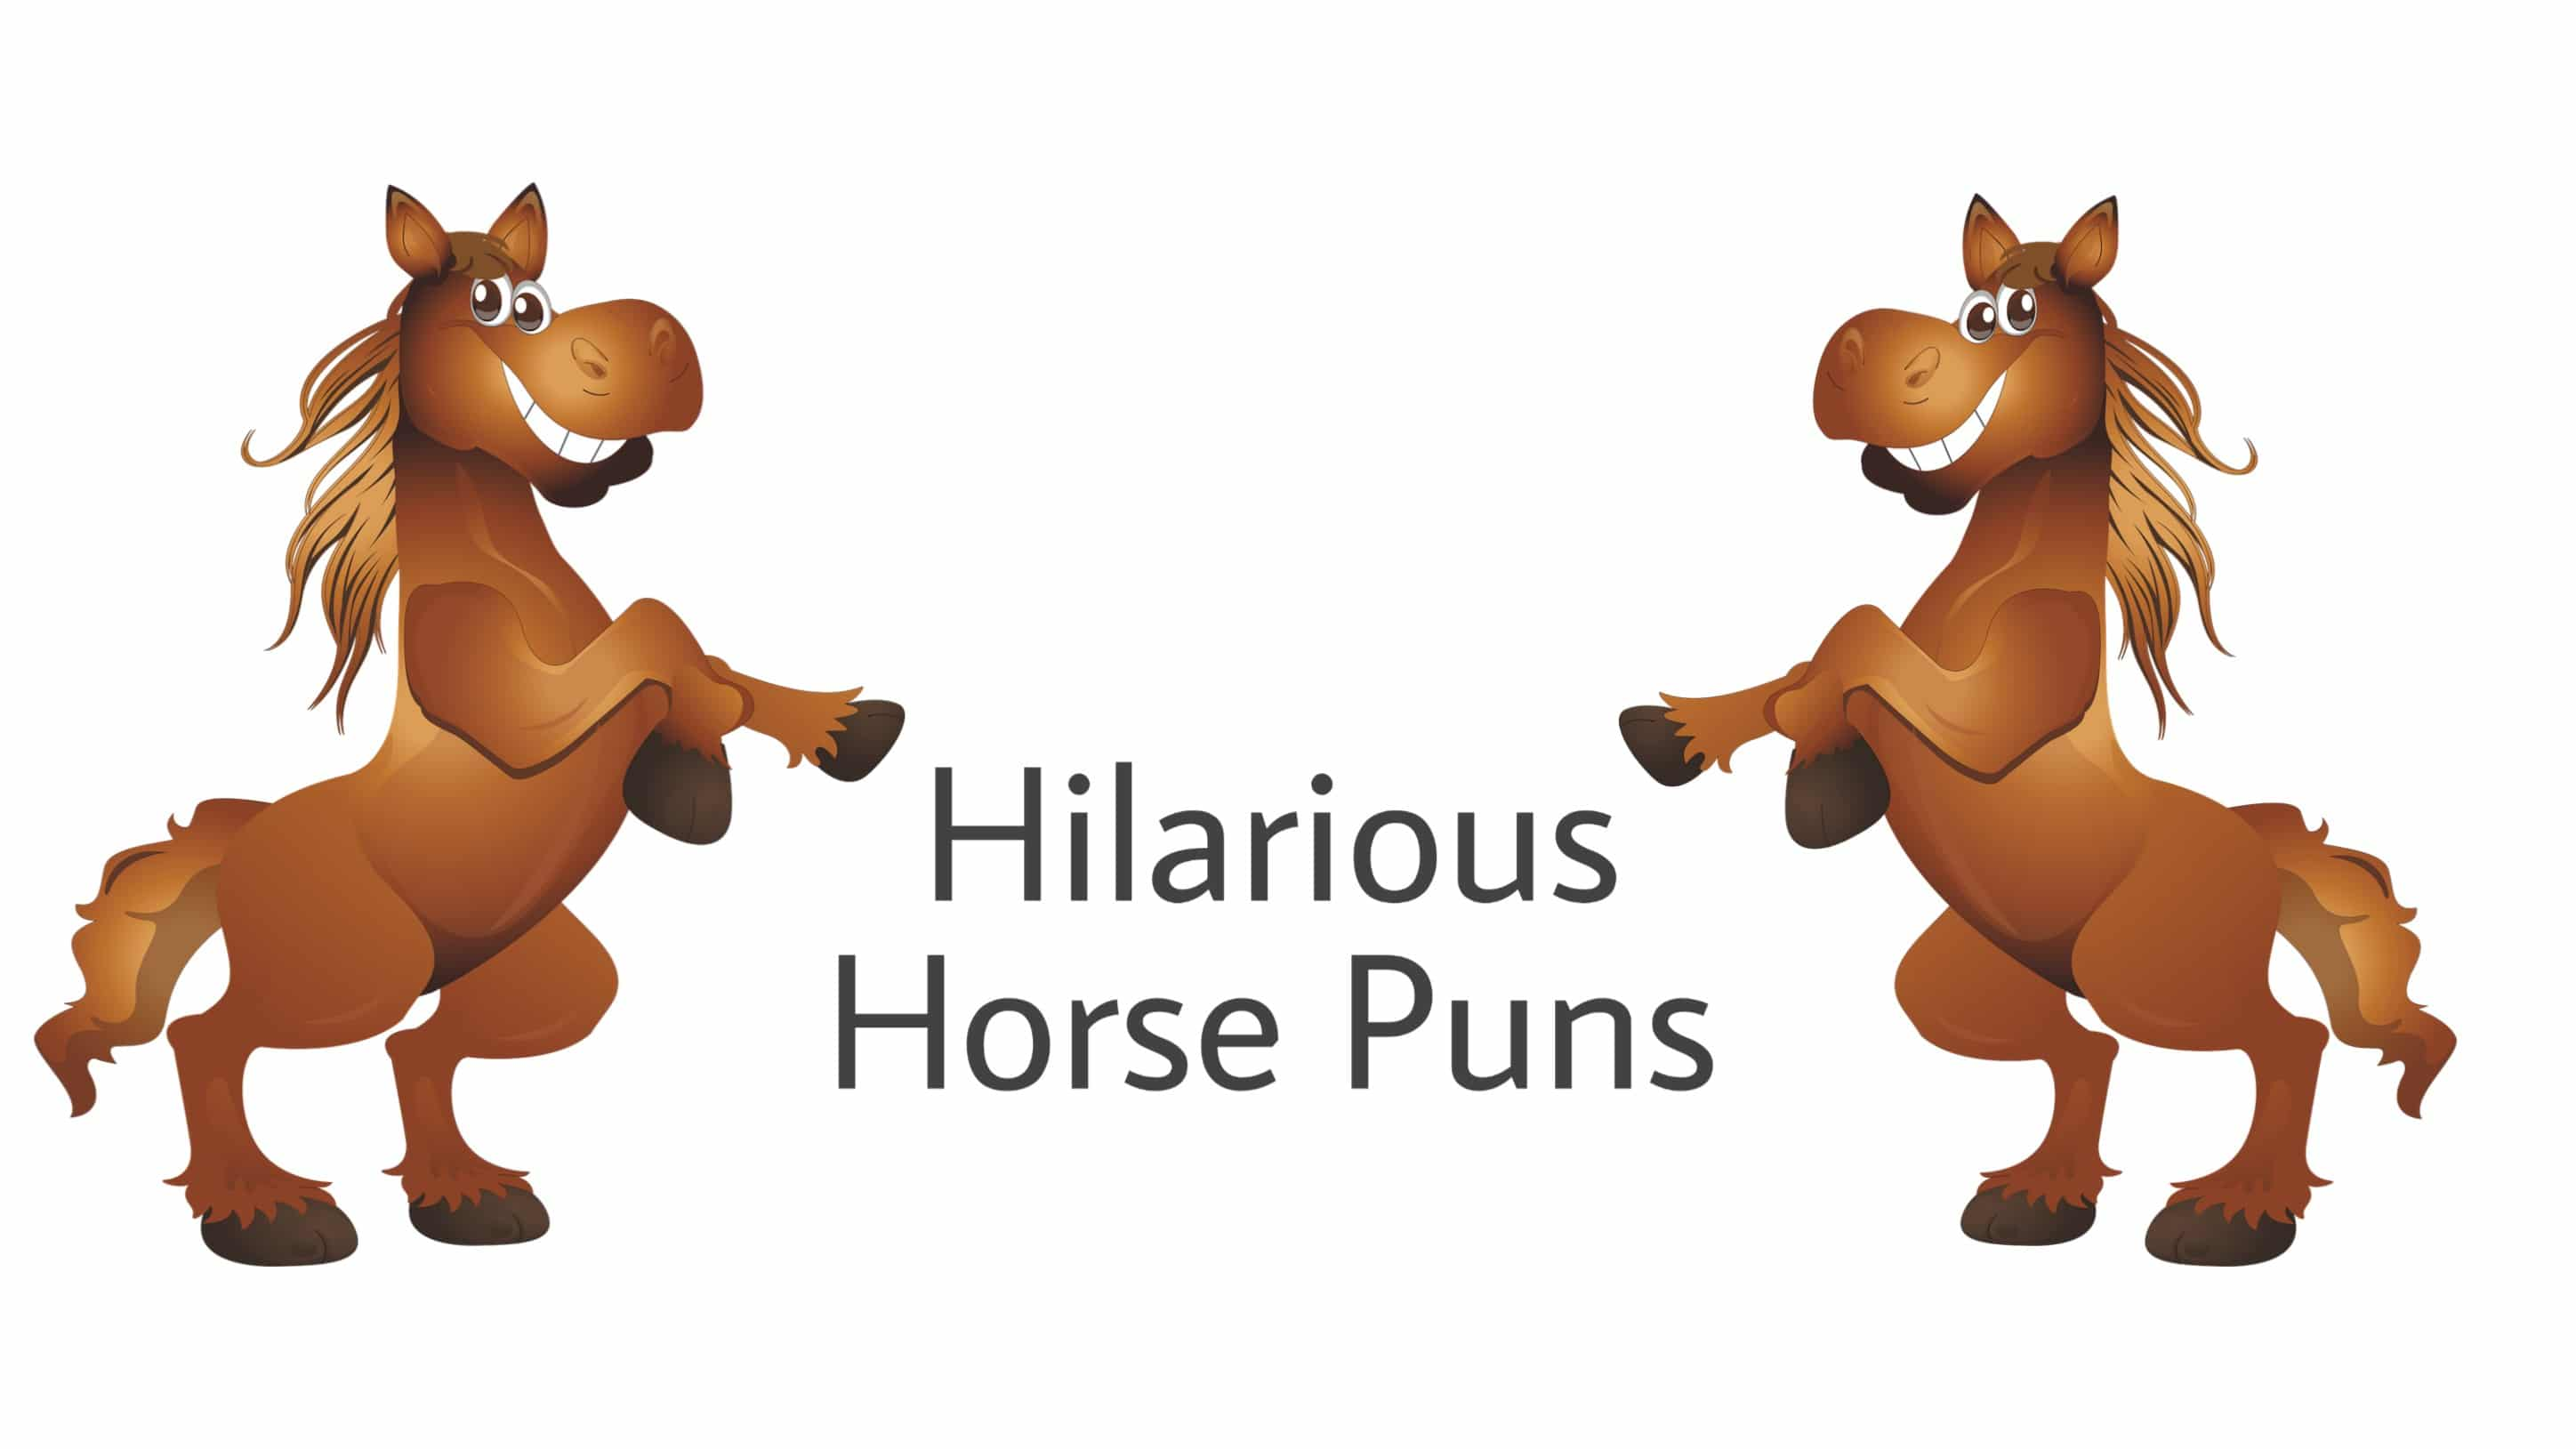 105 Horse puns You Can't Help But Laugh At